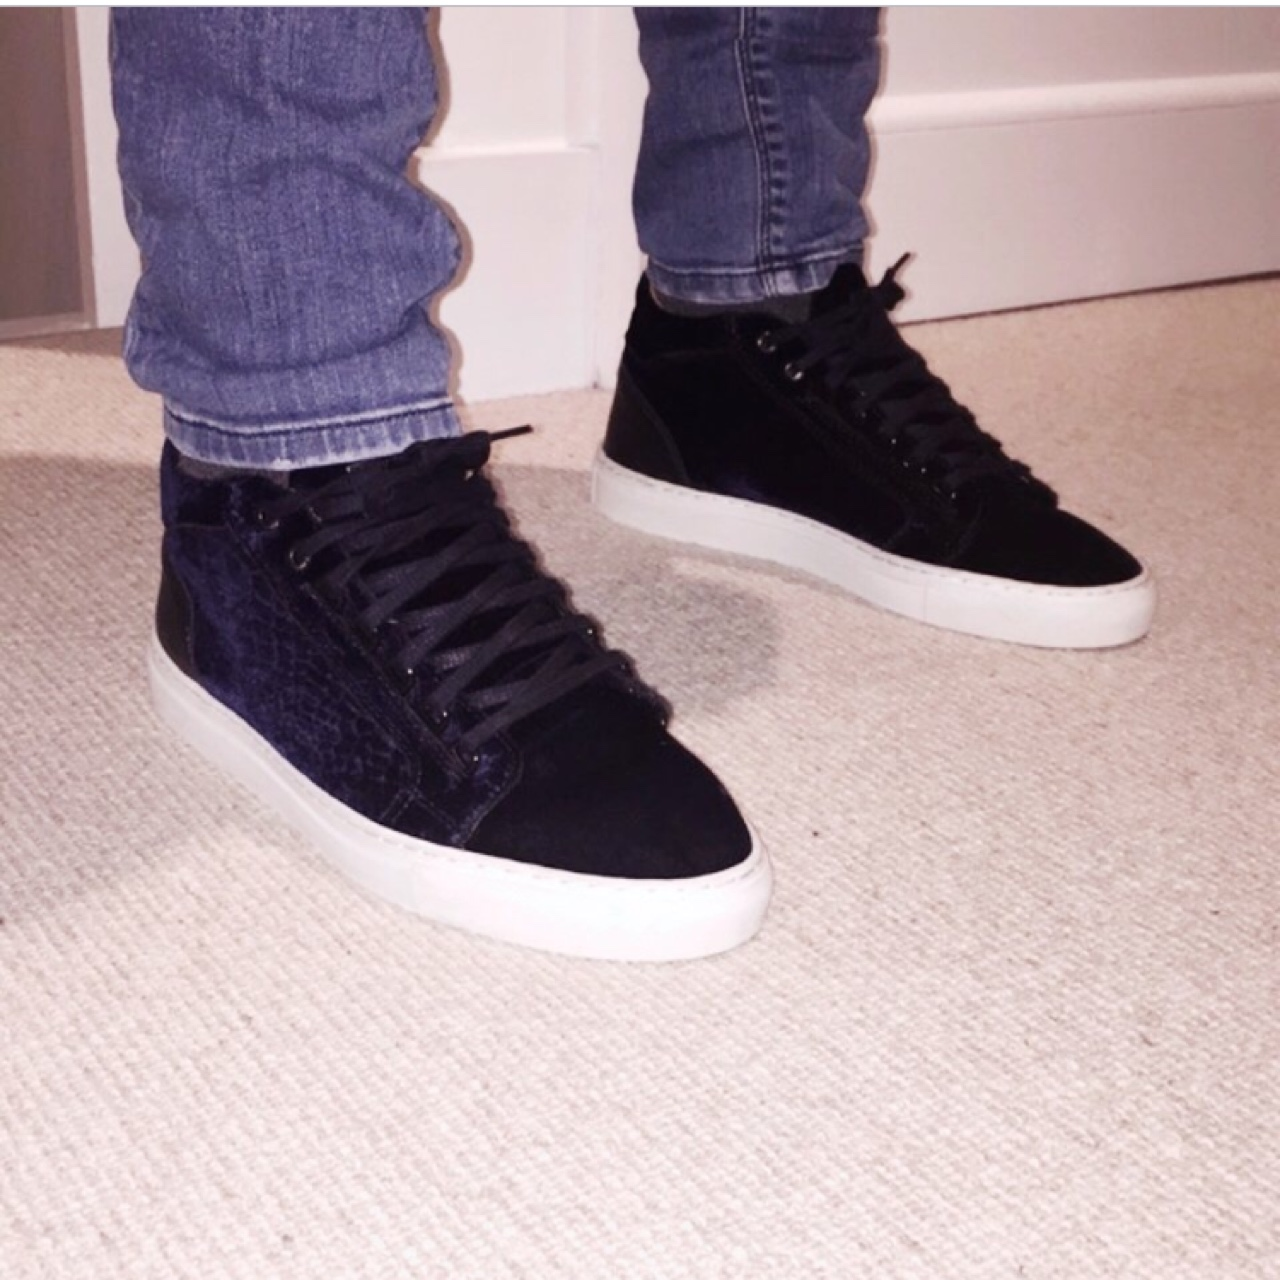 Android Homme Propulsion Mid High End Fashion Depop